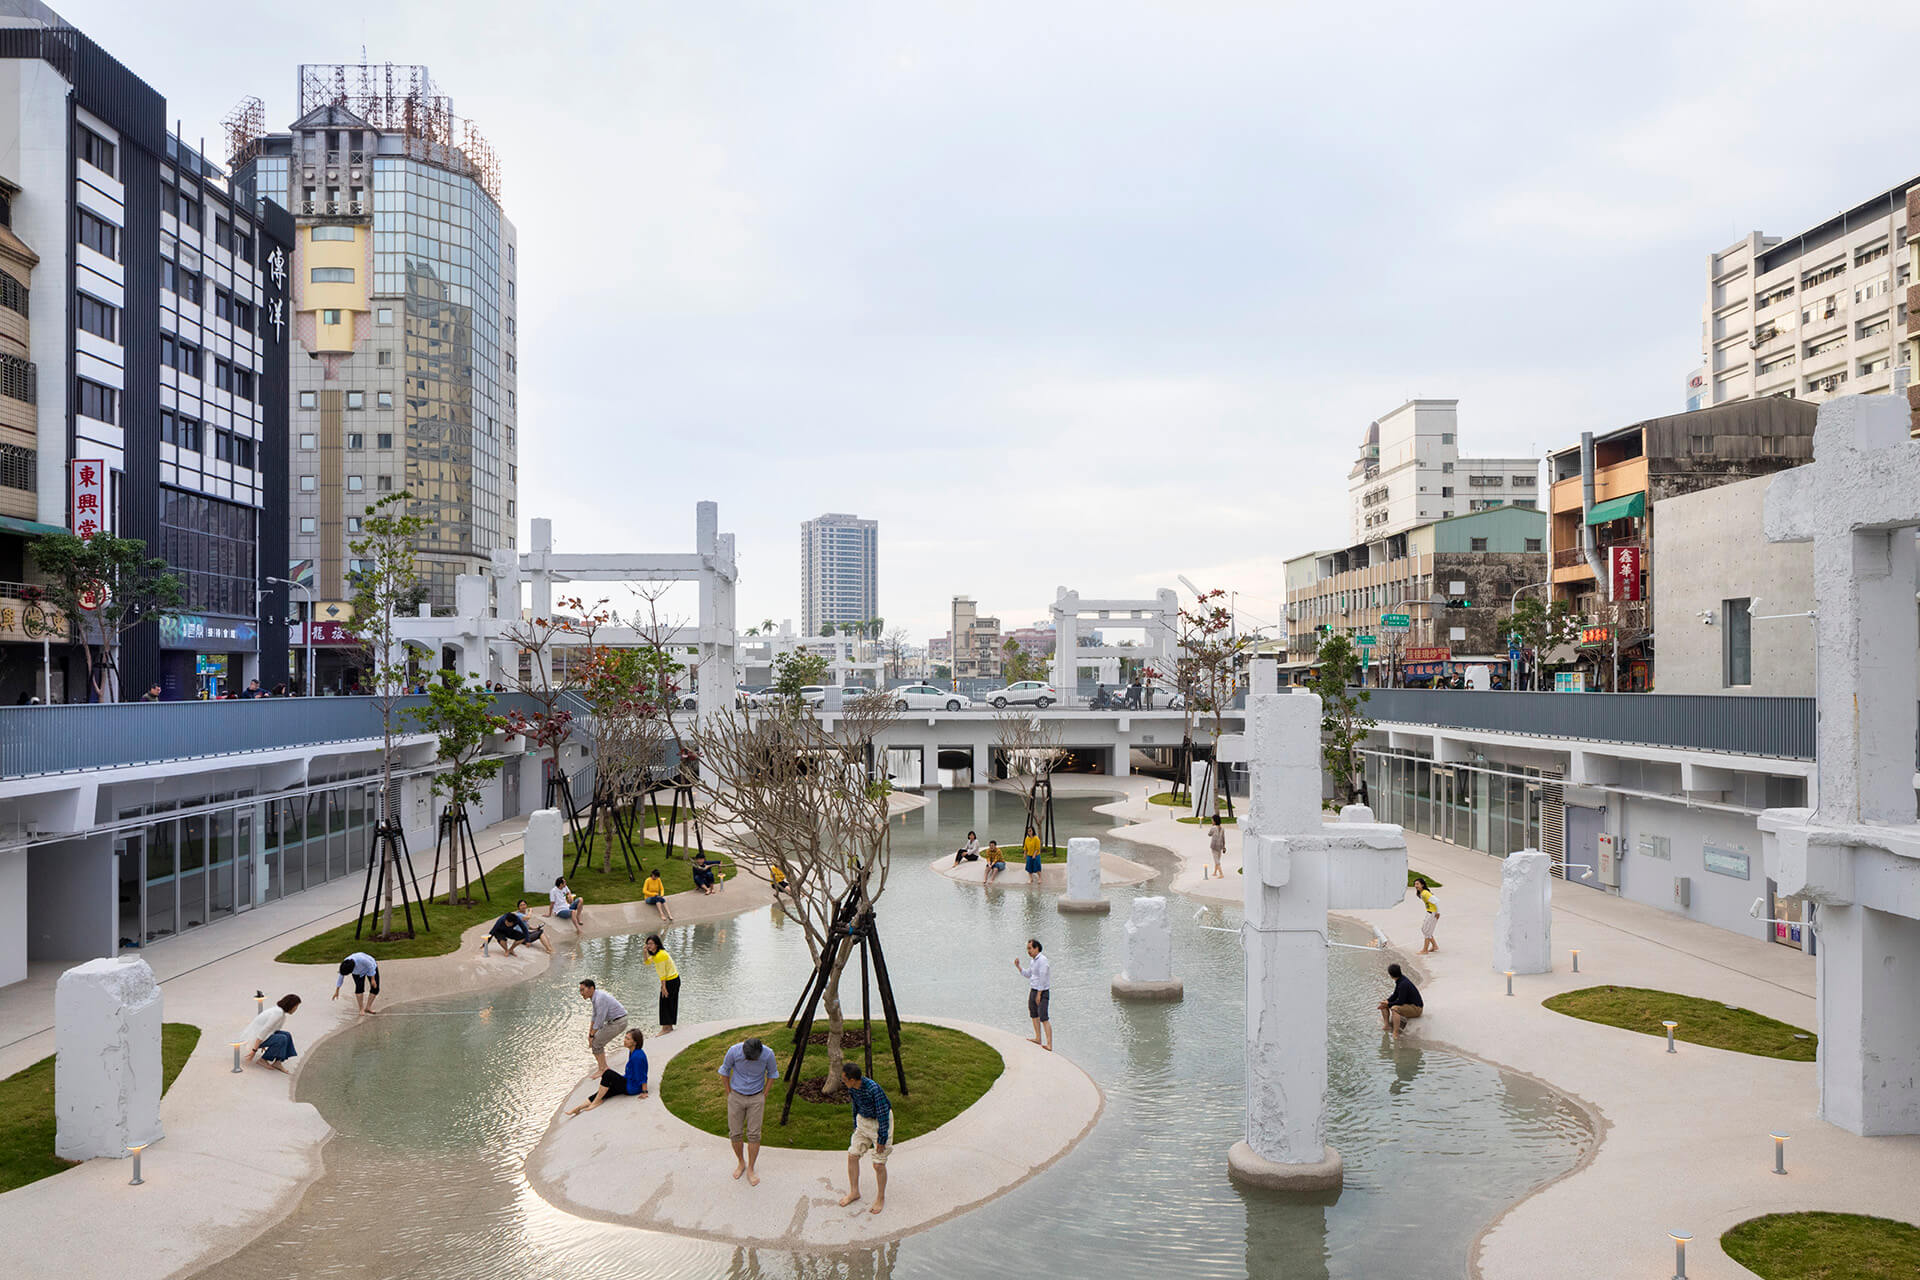 Tainan Spring sees the transformation of the abandoned China Town Mall into an urban lagoon | MVRDV's Tainan Spring is an urban lagoon in Tainan, Taiwan | STIRworld